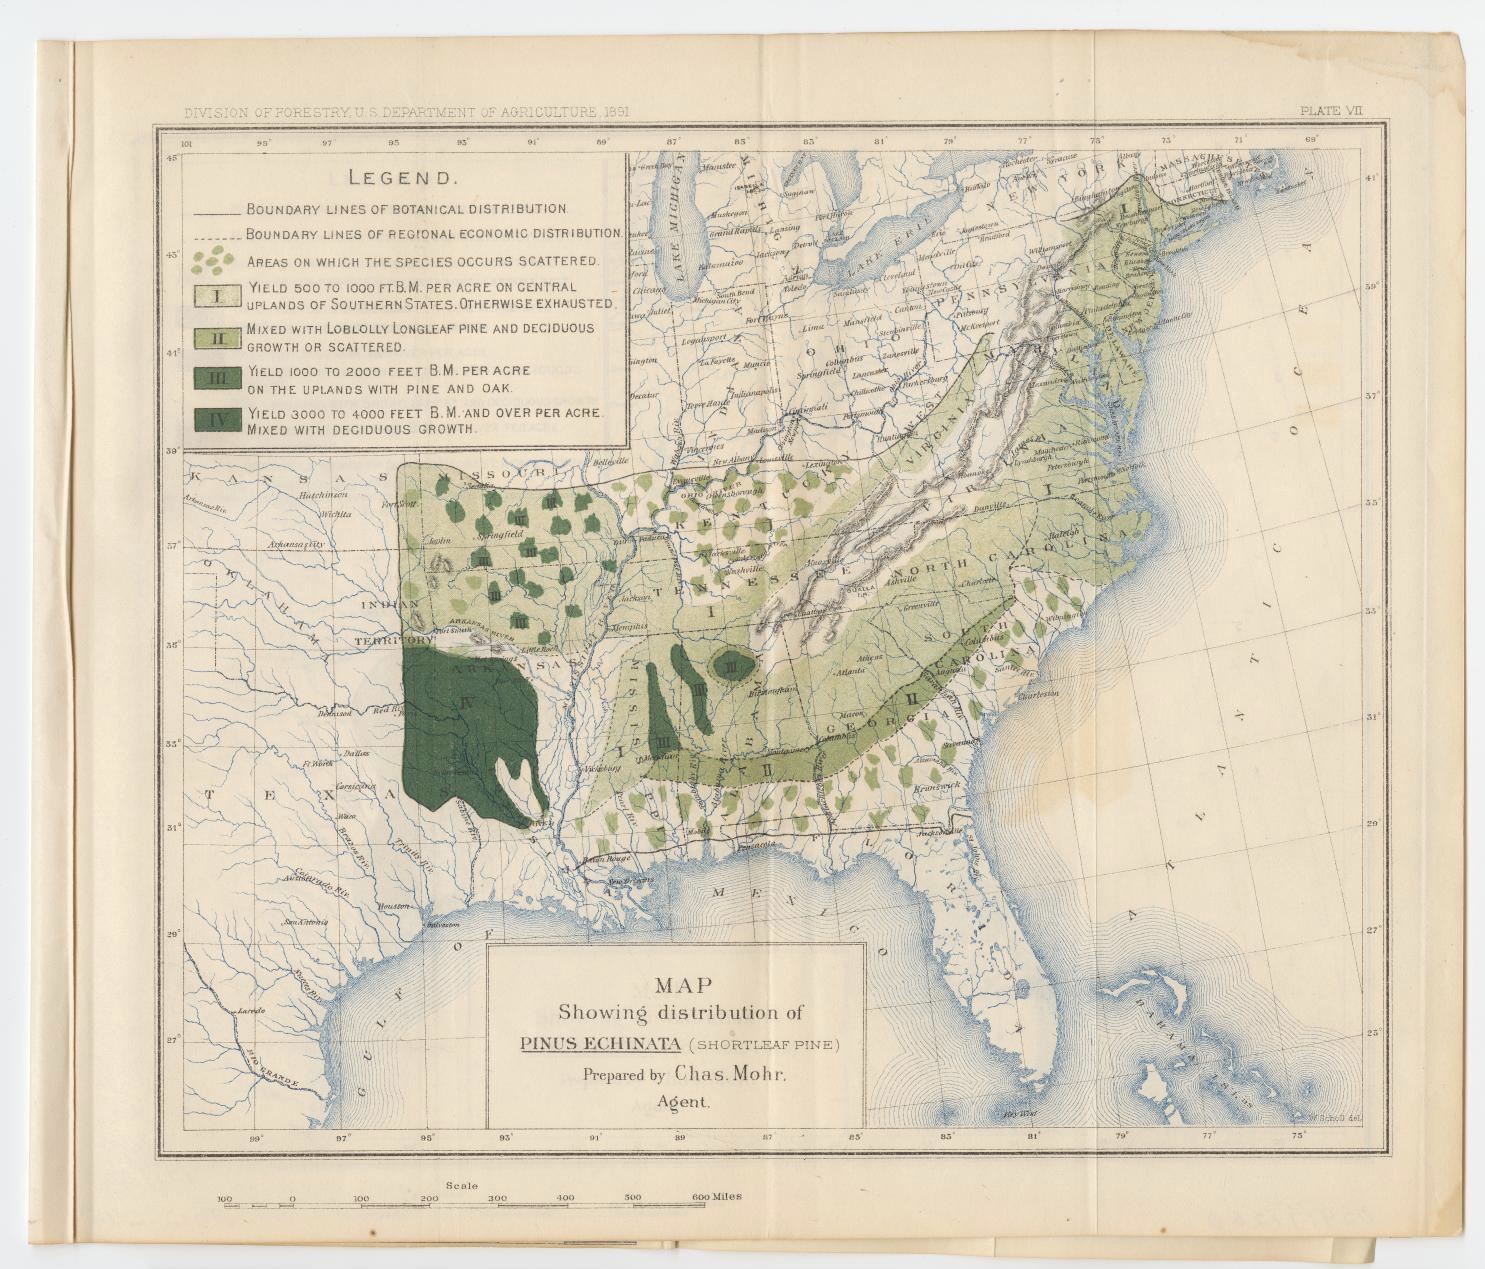 Map showing the distribution of Pinus Echinata (Shortleaf Pine) in 1891 by the Division of Forestry US Department of Agriculture